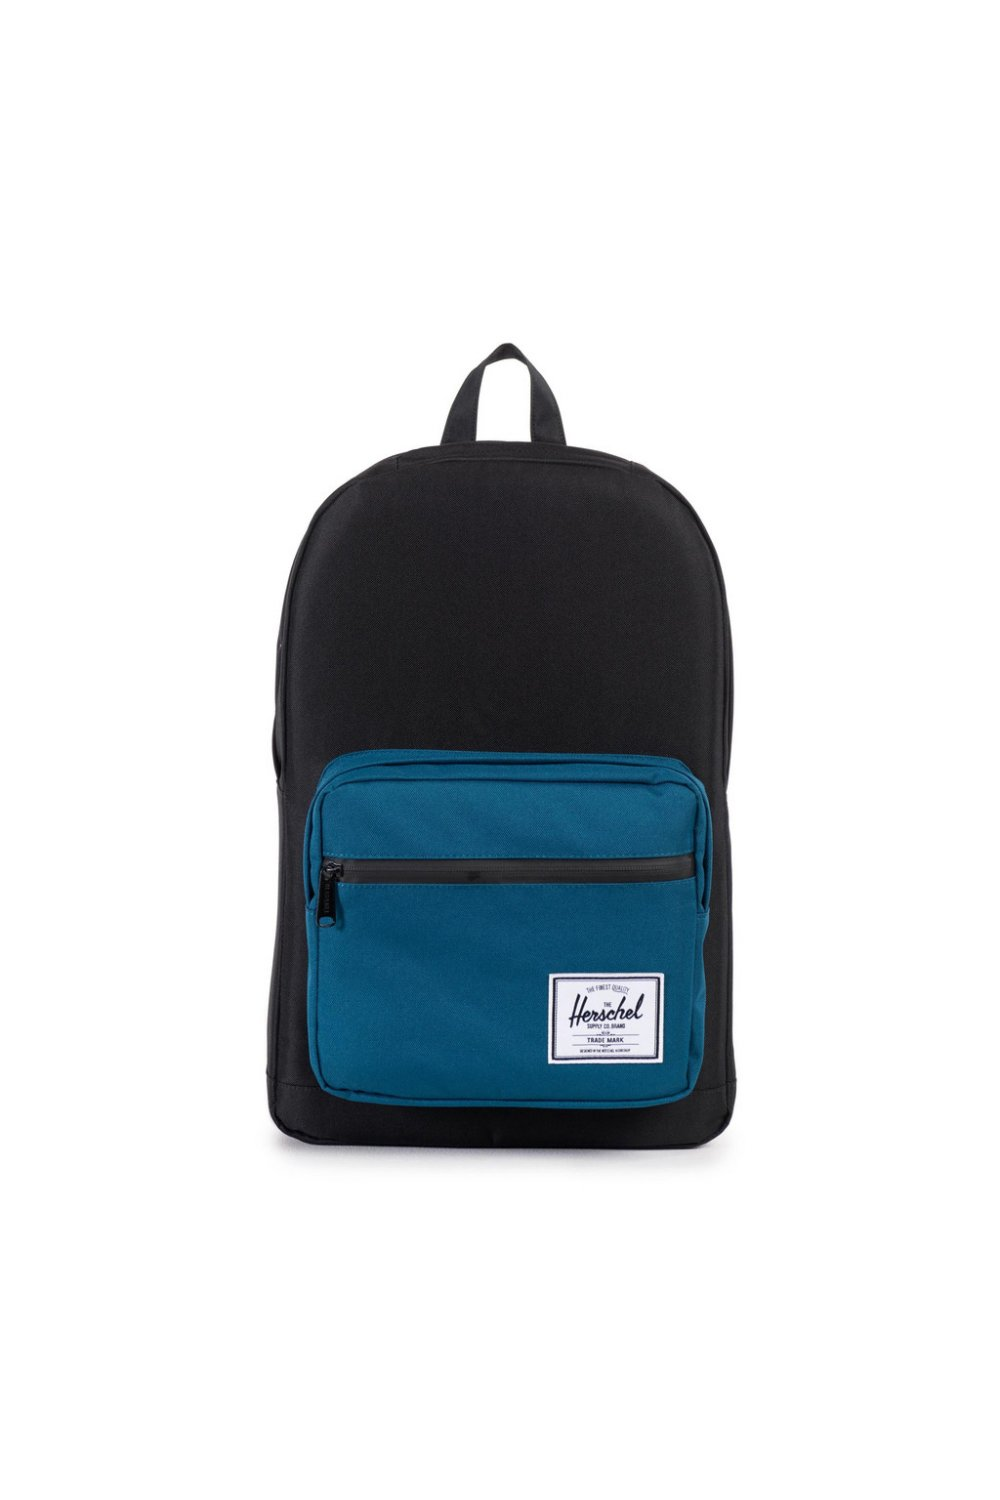 025cd5f9f283 Herschel Supply Co Pop Quiz Backpack